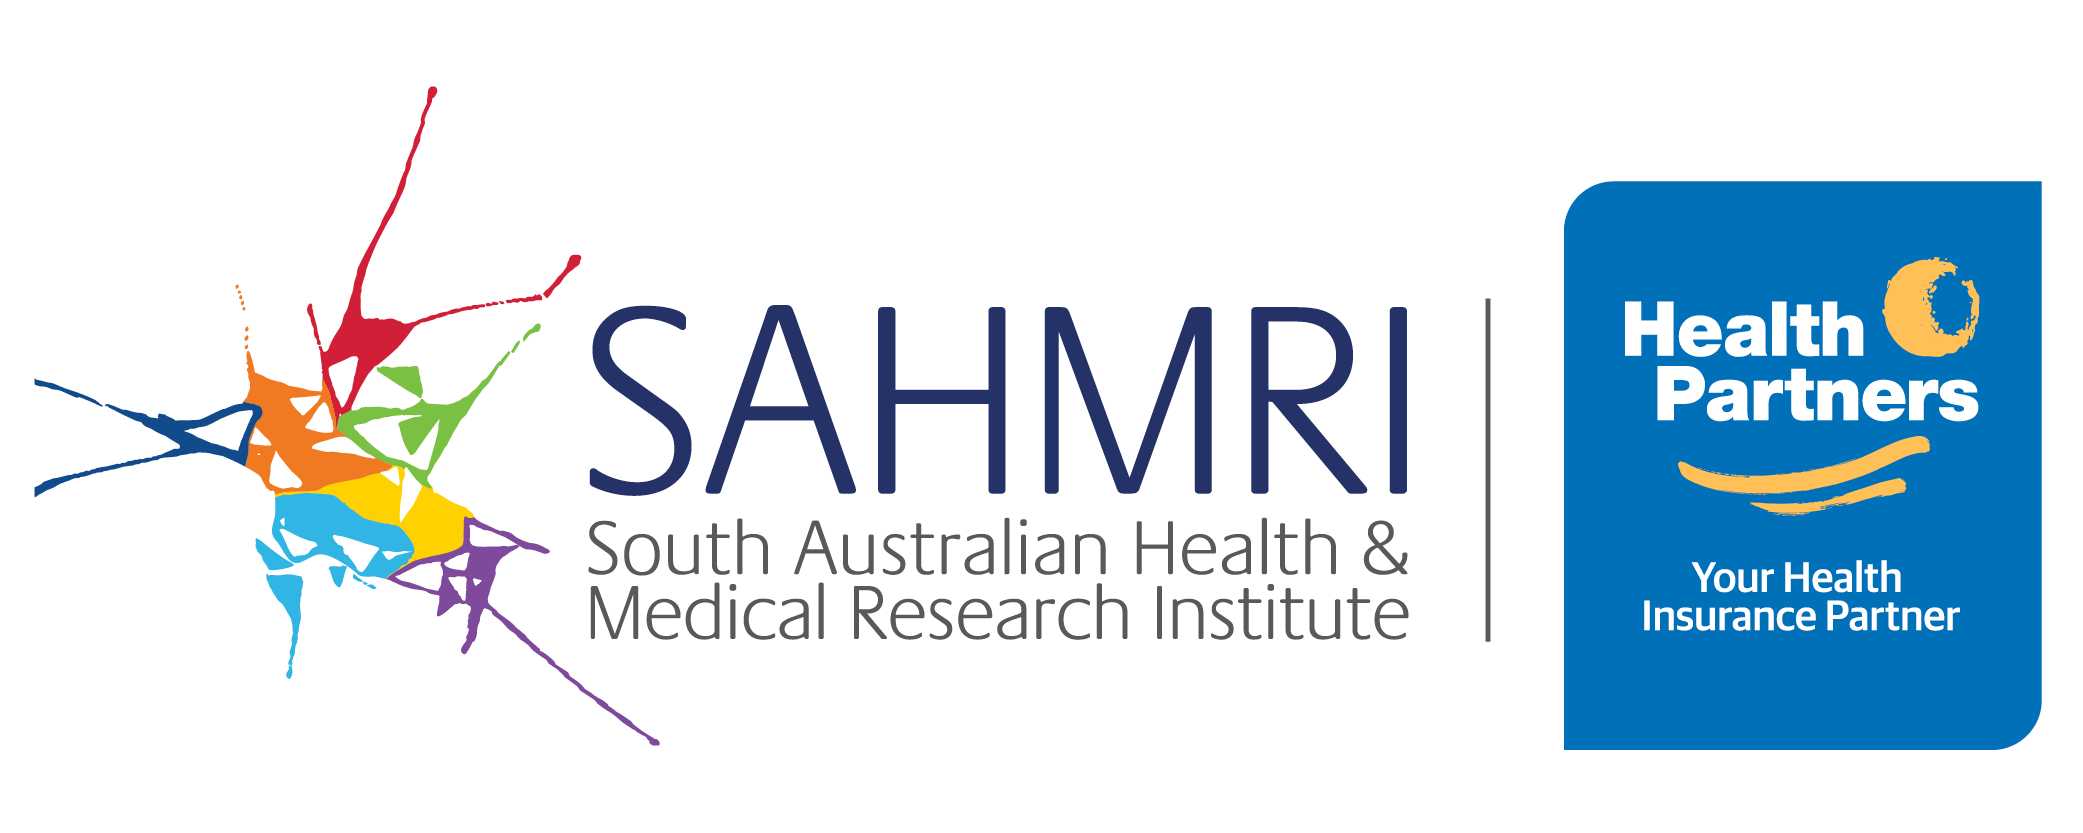 SAHMRI | Health Partners